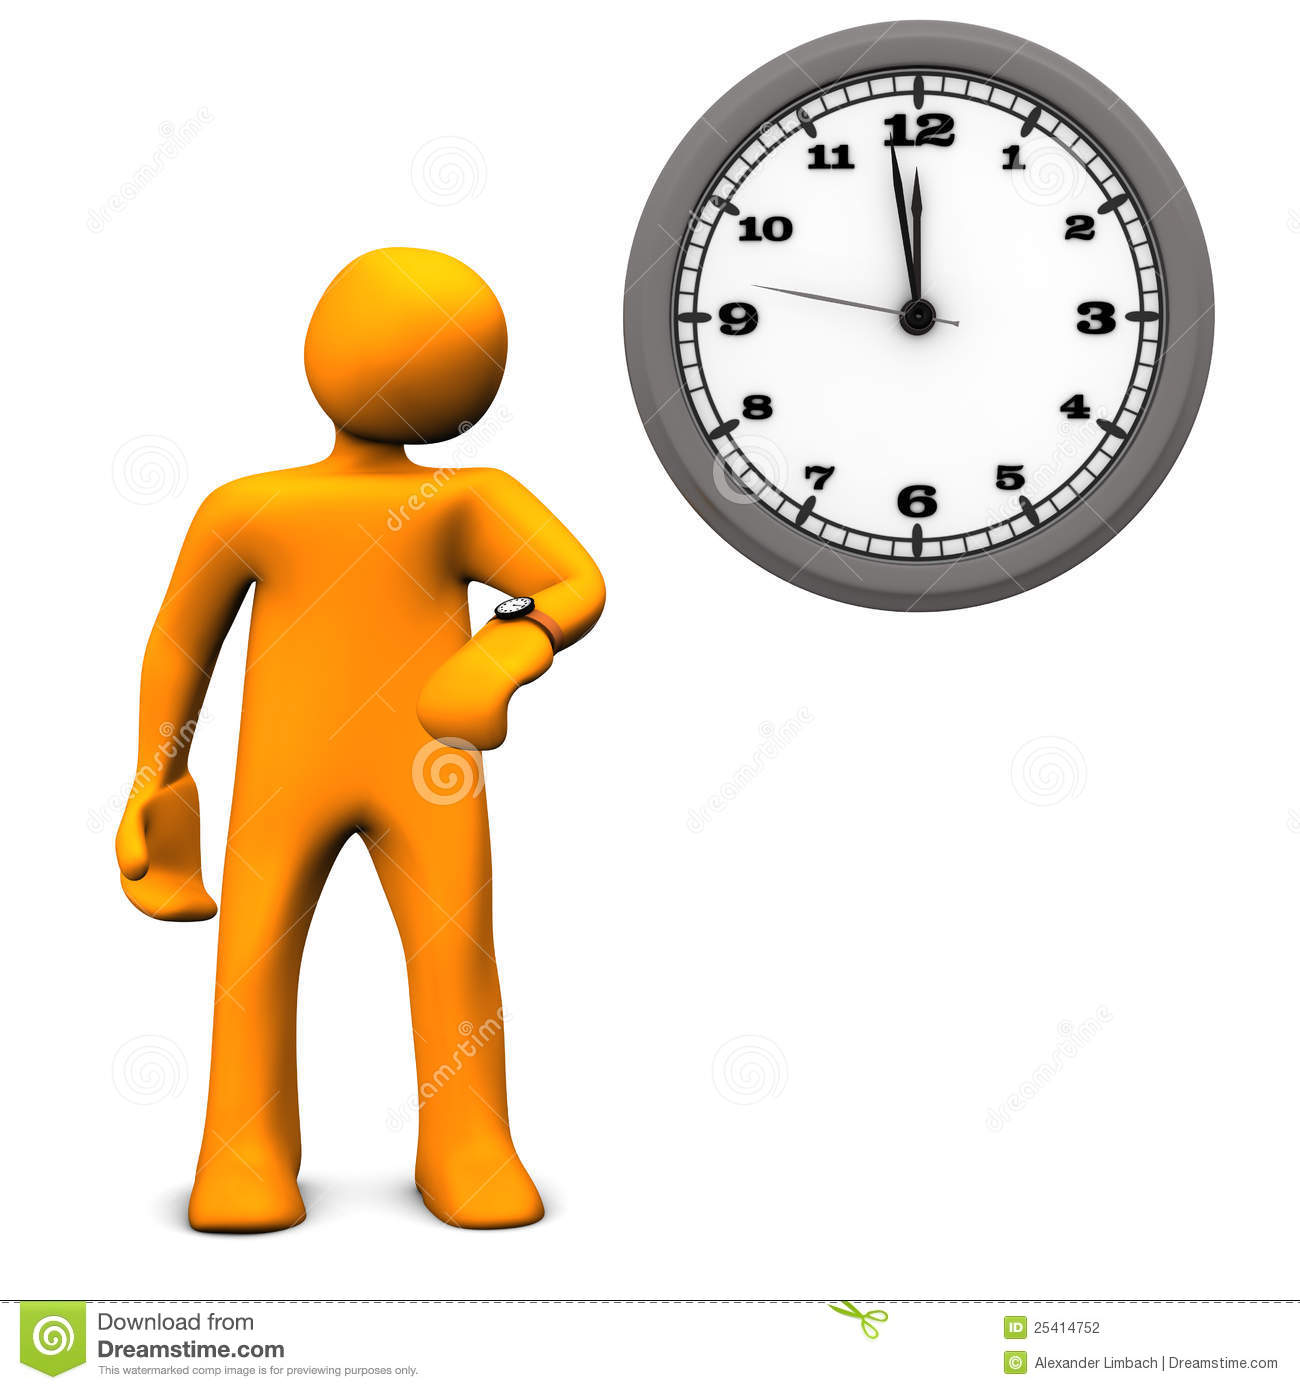 Waiting with clock clipart graphic stock Waiting Time Stock Photography - Image: 25414752 graphic stock